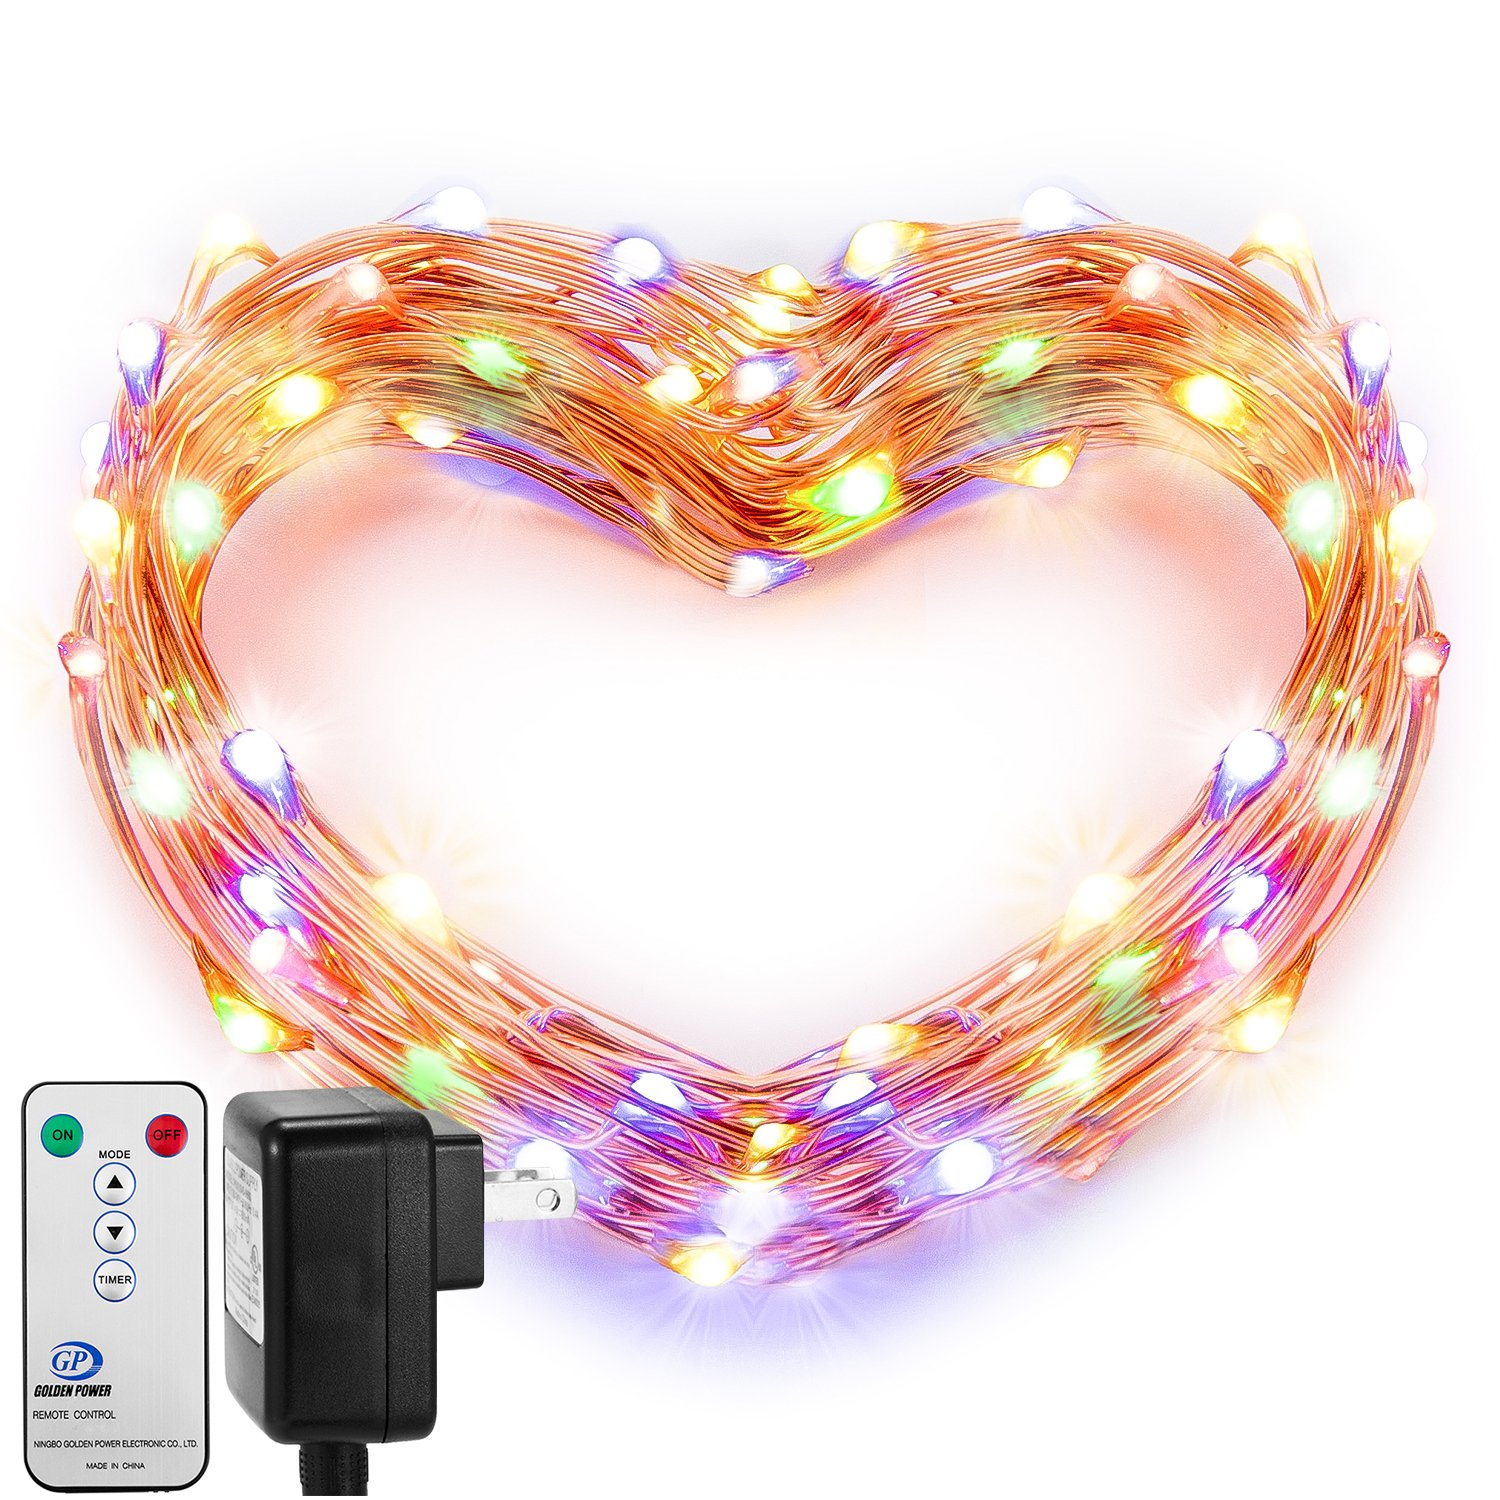 Lighting Strings Bright Love Heart Shape Wire Decorative Indoor Decoration Iron Art Vintage Fairy Lamps Holiday Home Light String Ornaments Durable And To Have A Long Life. Lights & Lighting